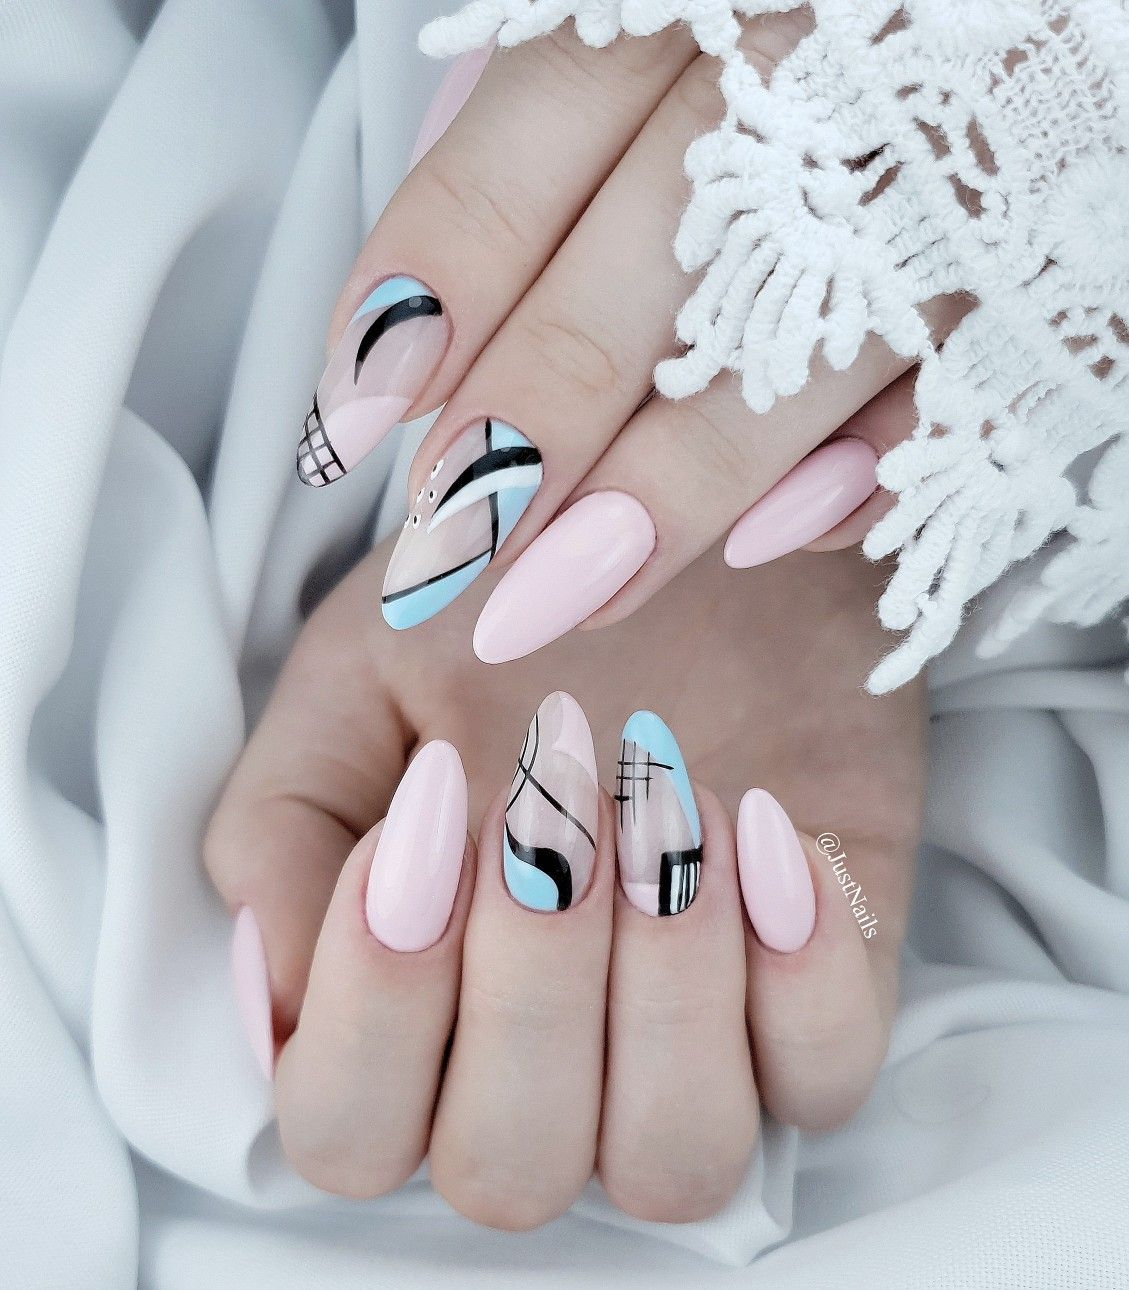 Pin By Justnails On Justnails With Images Rozowe Paznokcie